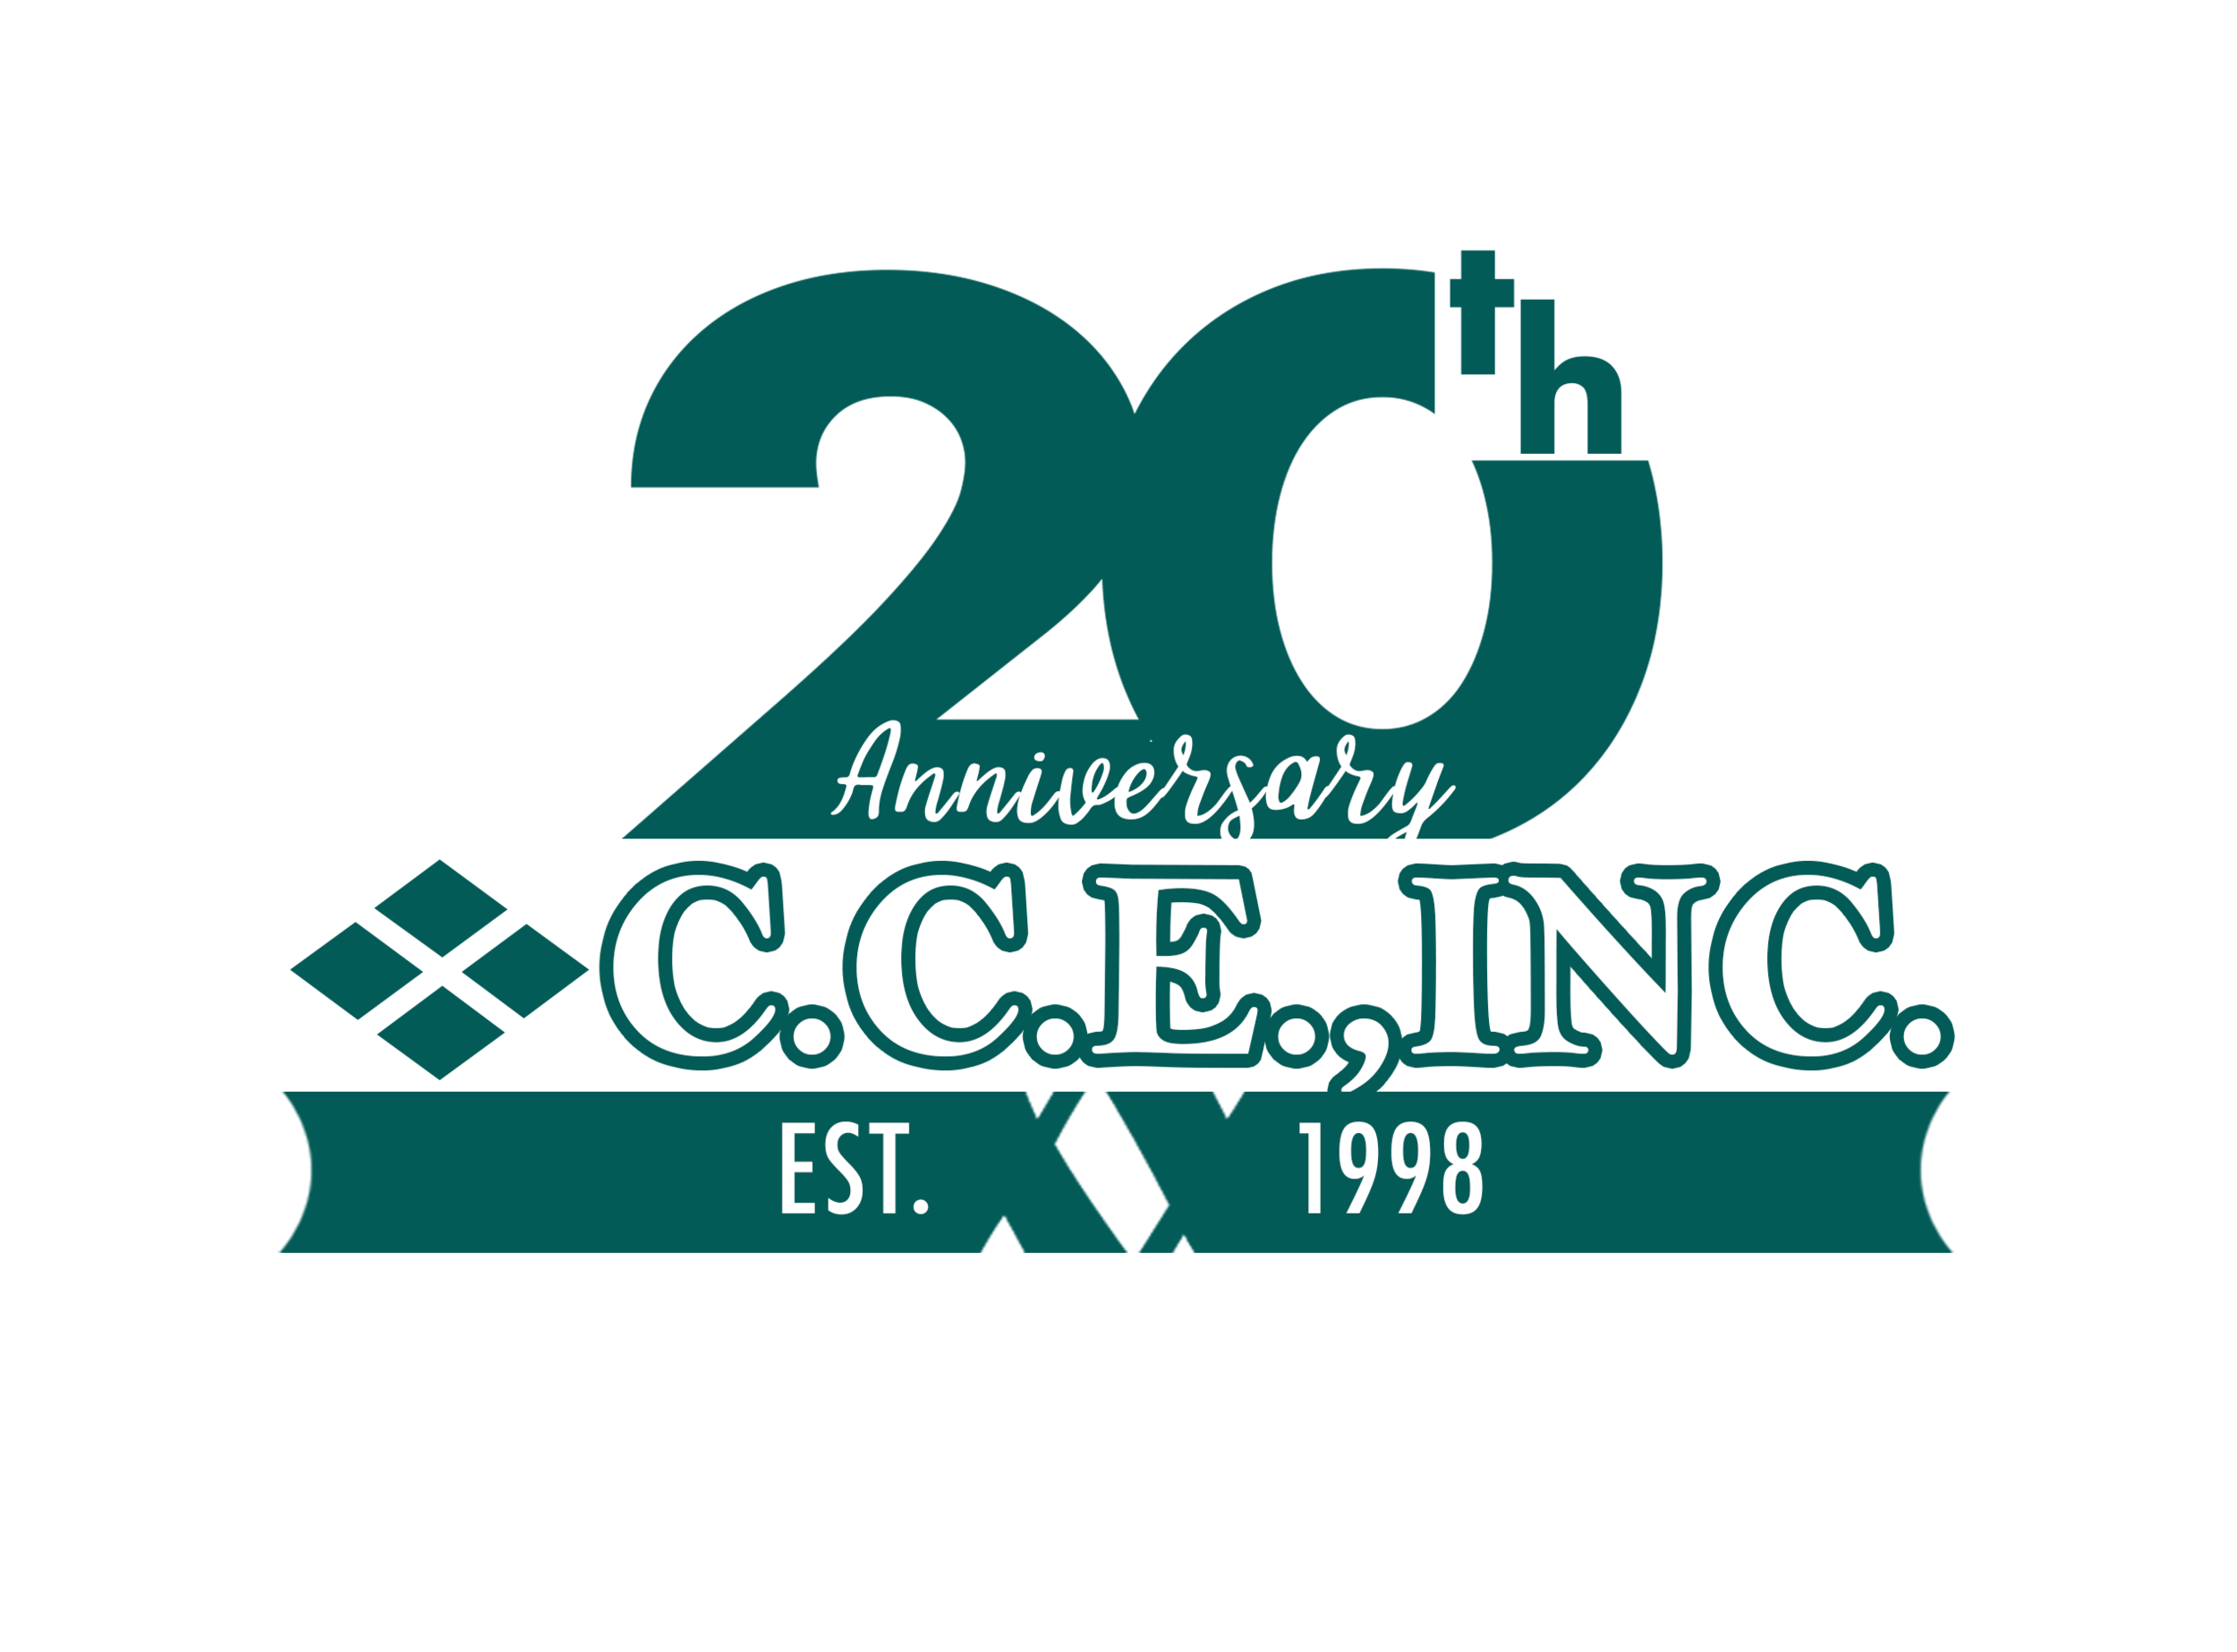 CCE 20th Anniversary logo 11-18.png